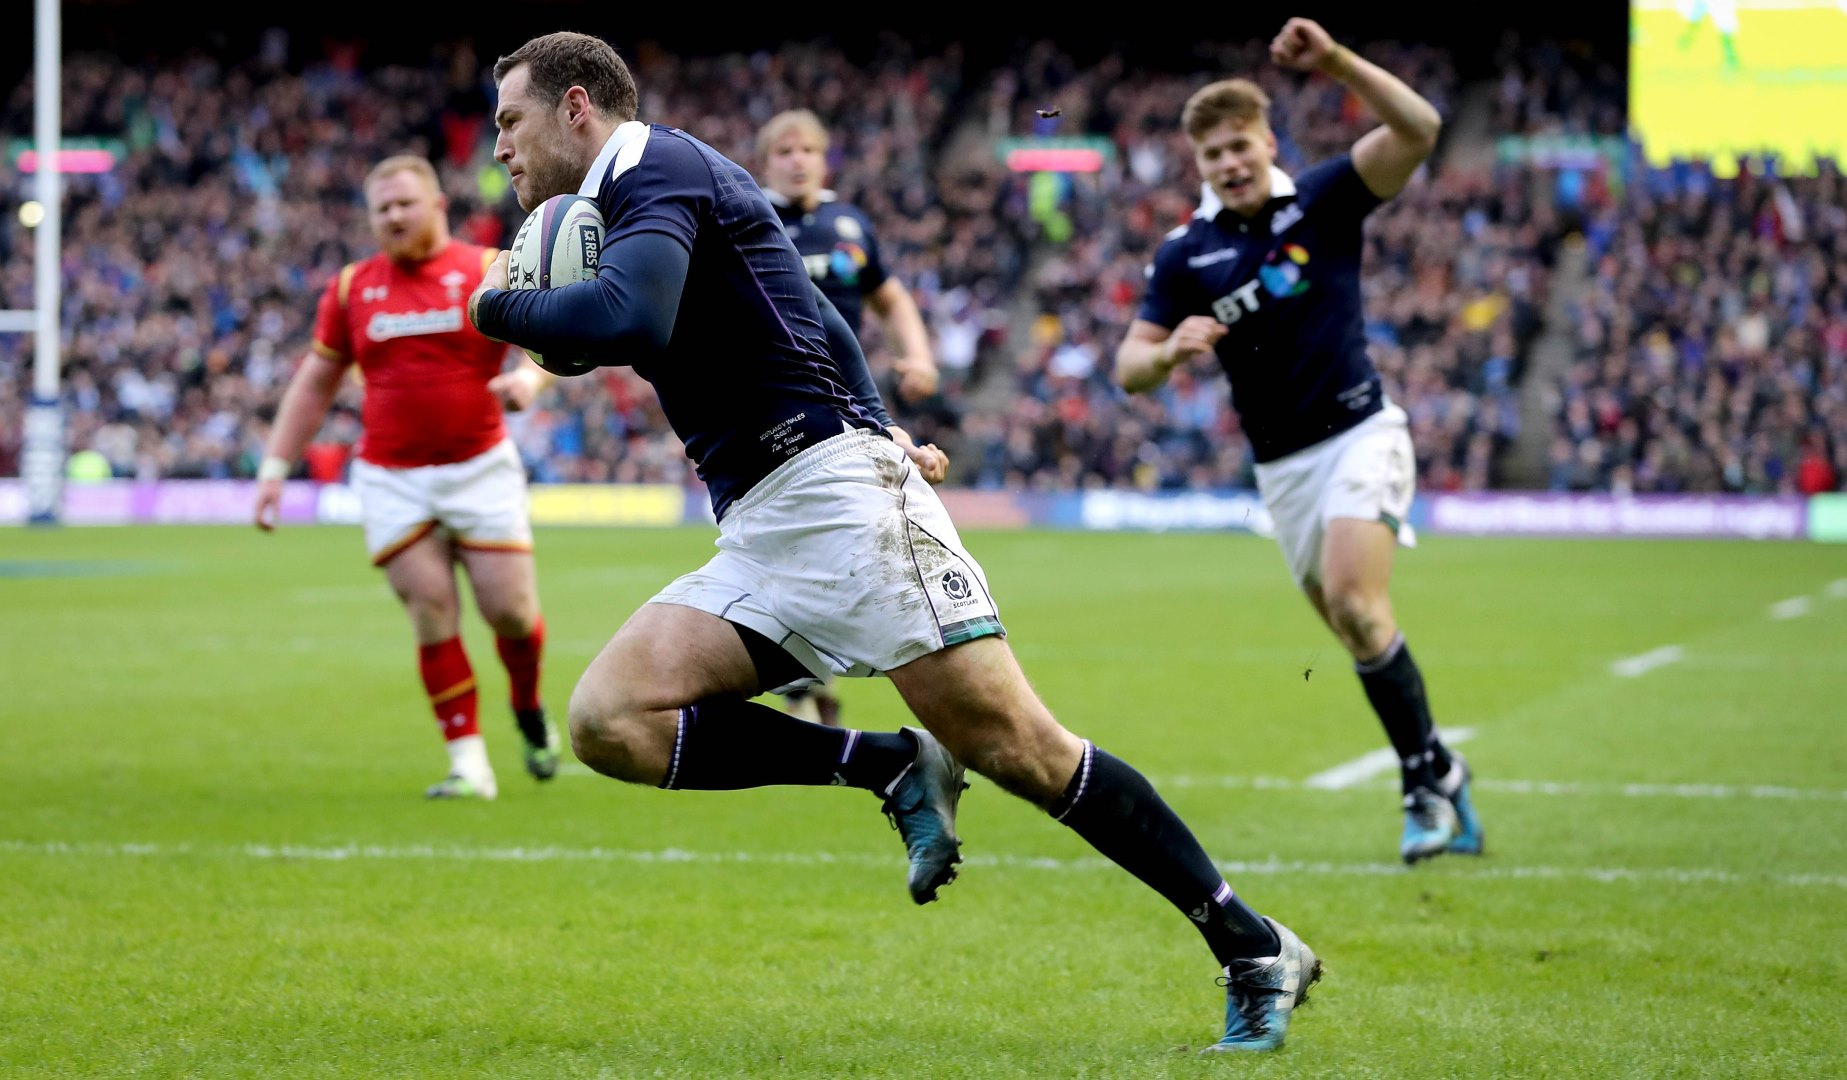 LionsWatch: Seymour and Visser lift Scotland to famous victory